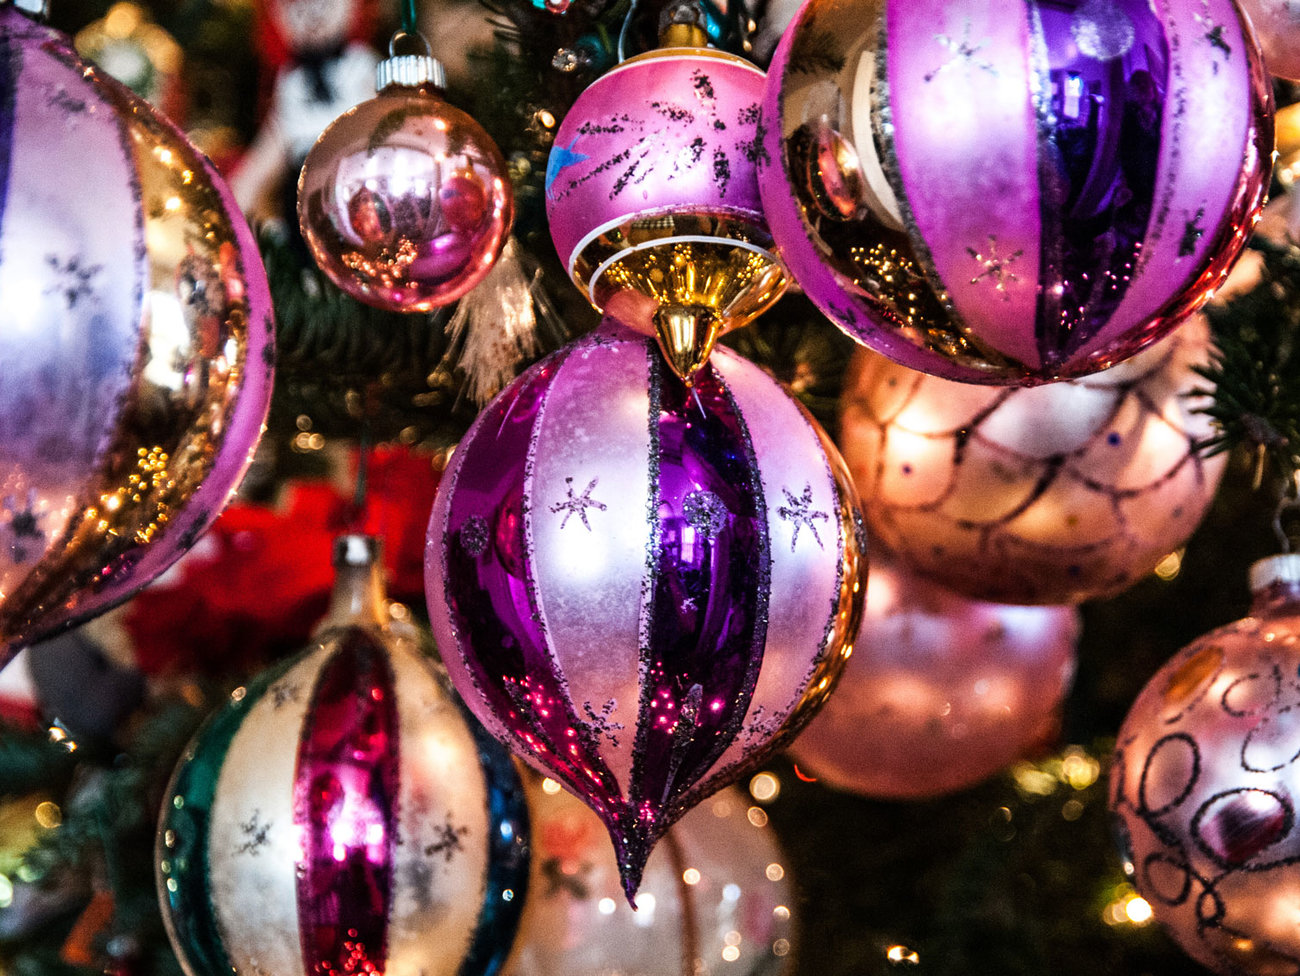 ornaments-holiday-homepg-gg1115.jpg